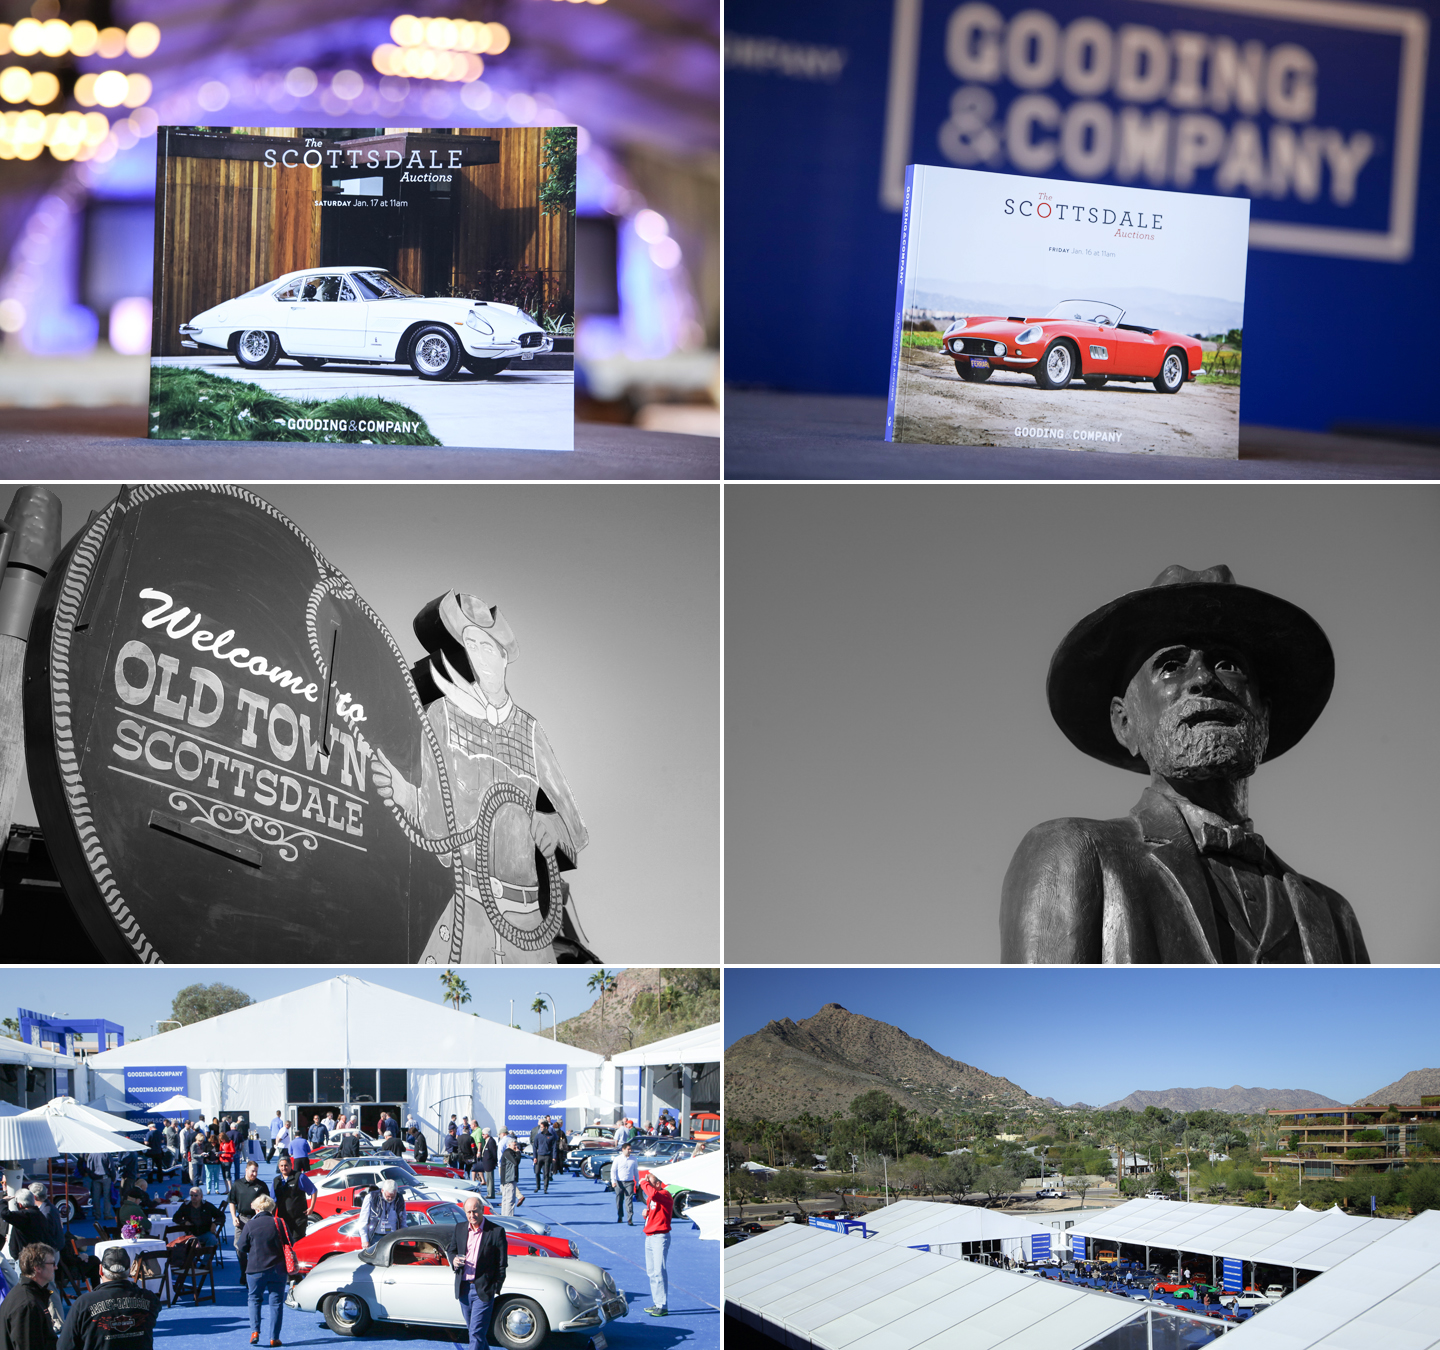 Gooding and Company Car Auctions